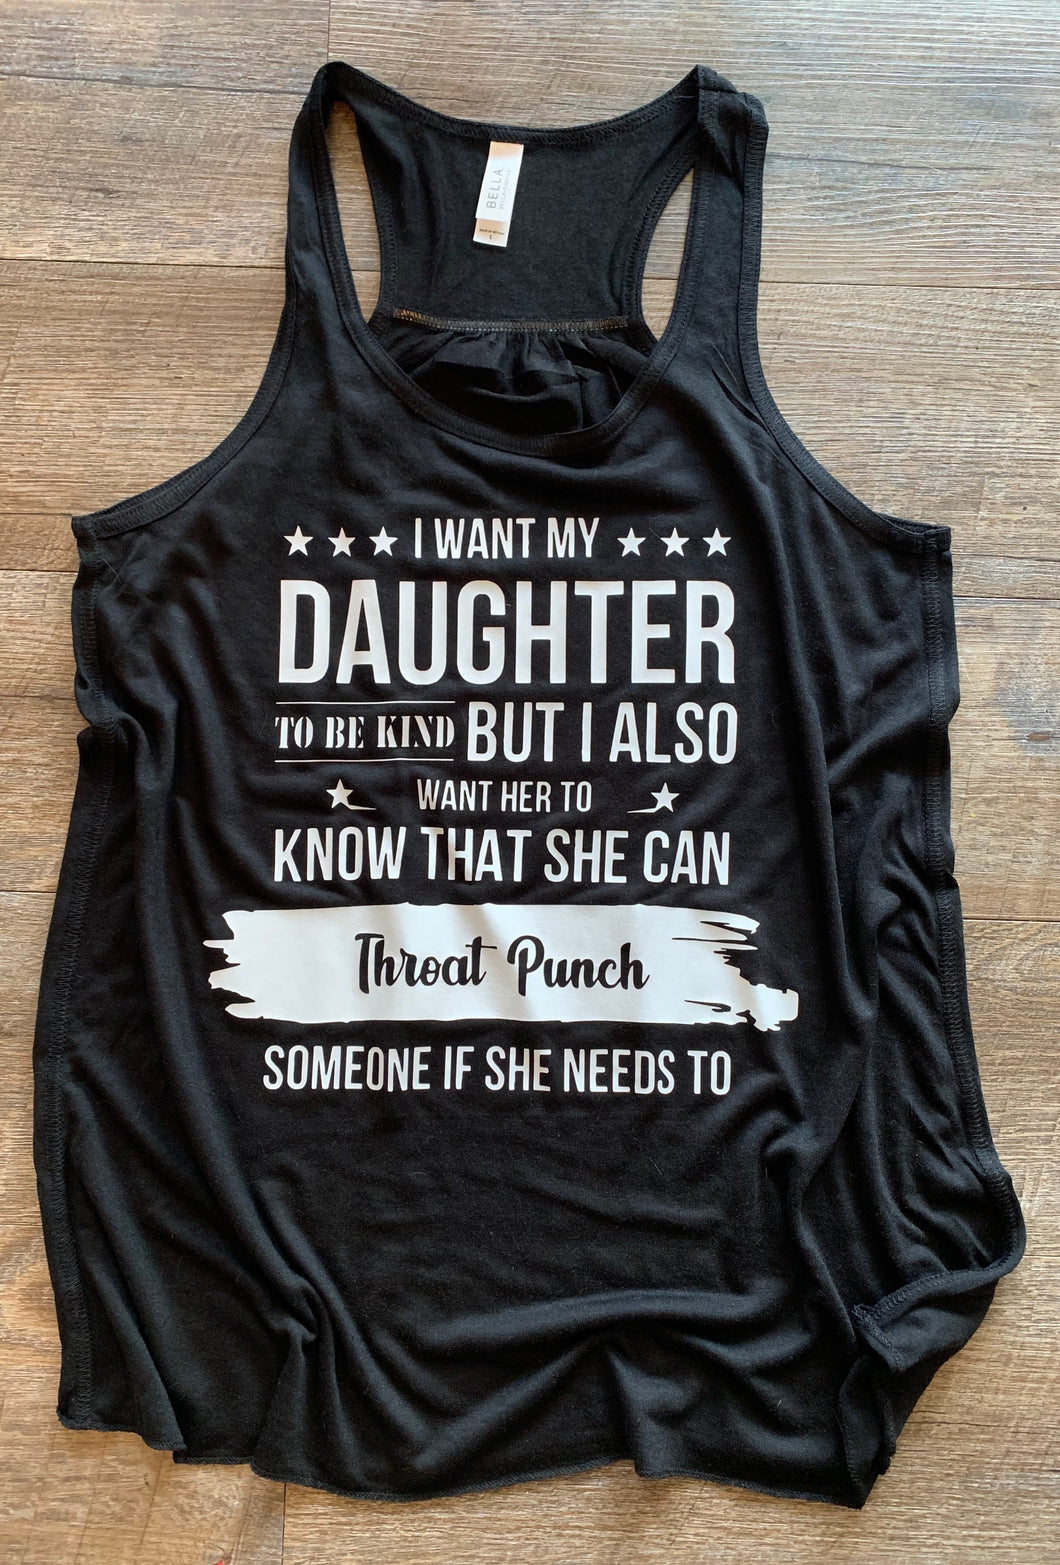 I want my daughter to be kind but I also want her to know that she can throat punch someone if she needs to - Mavictoria Designs Hot Press Express